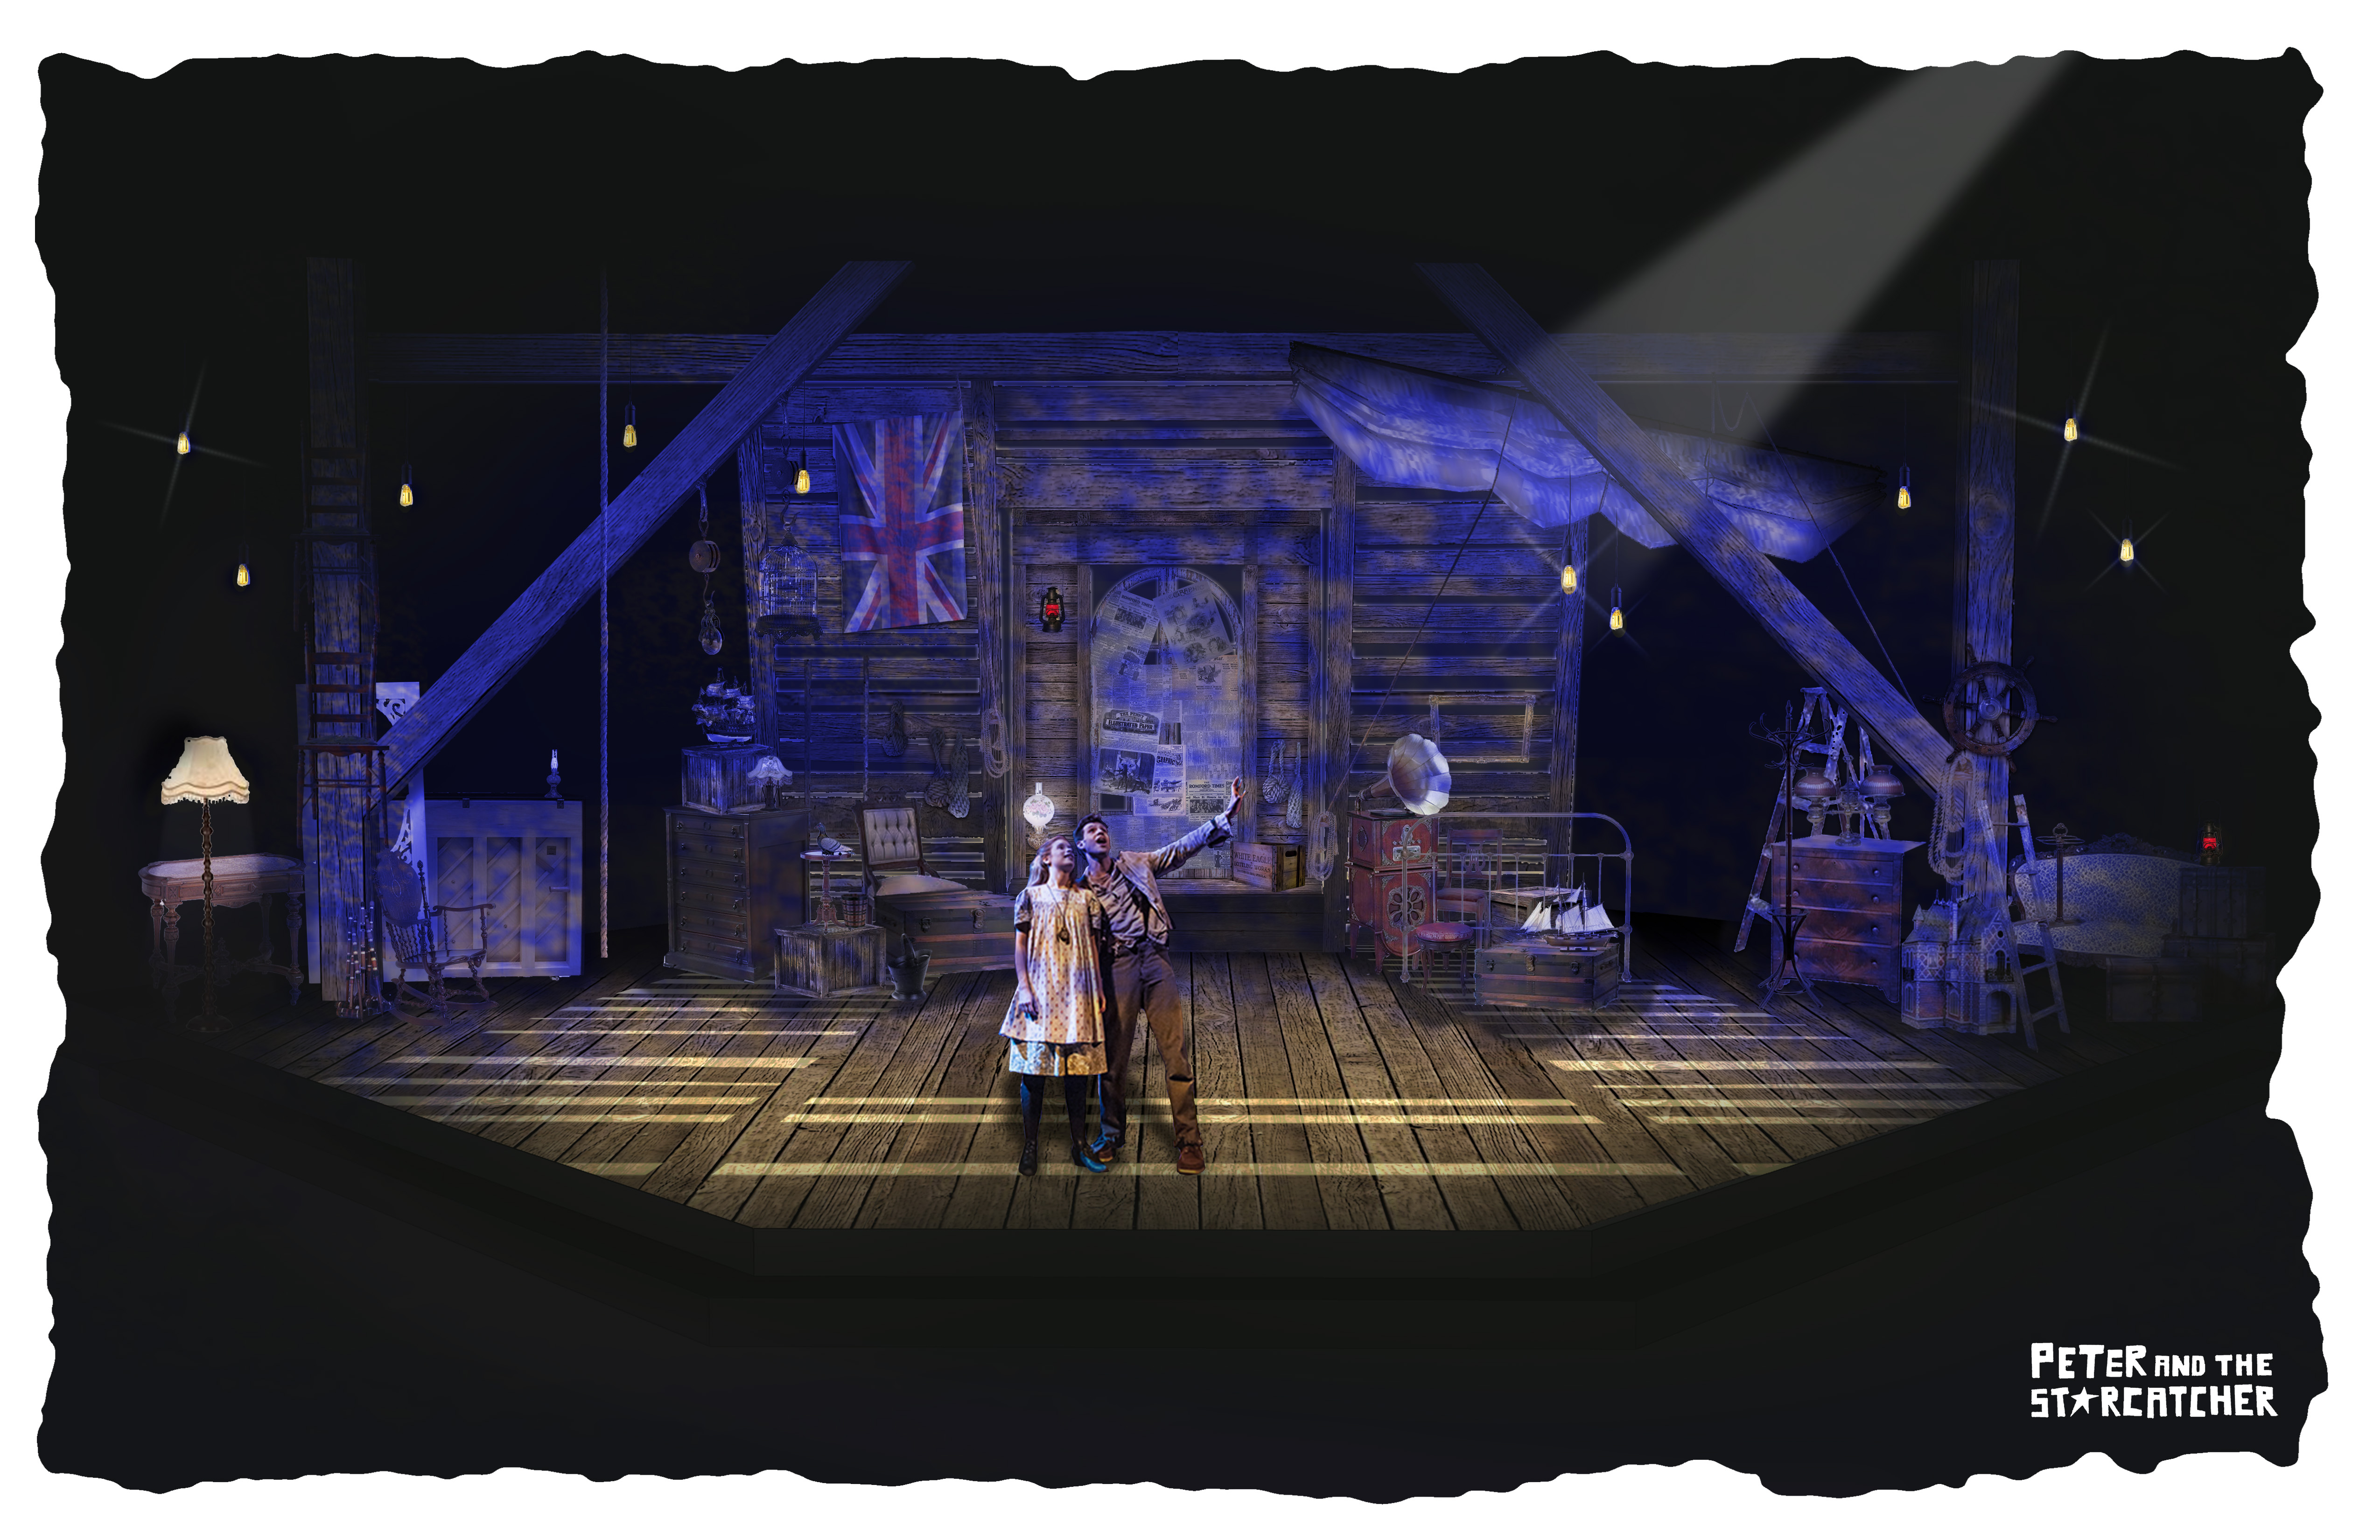 Peter and the Starcatcher - rendering